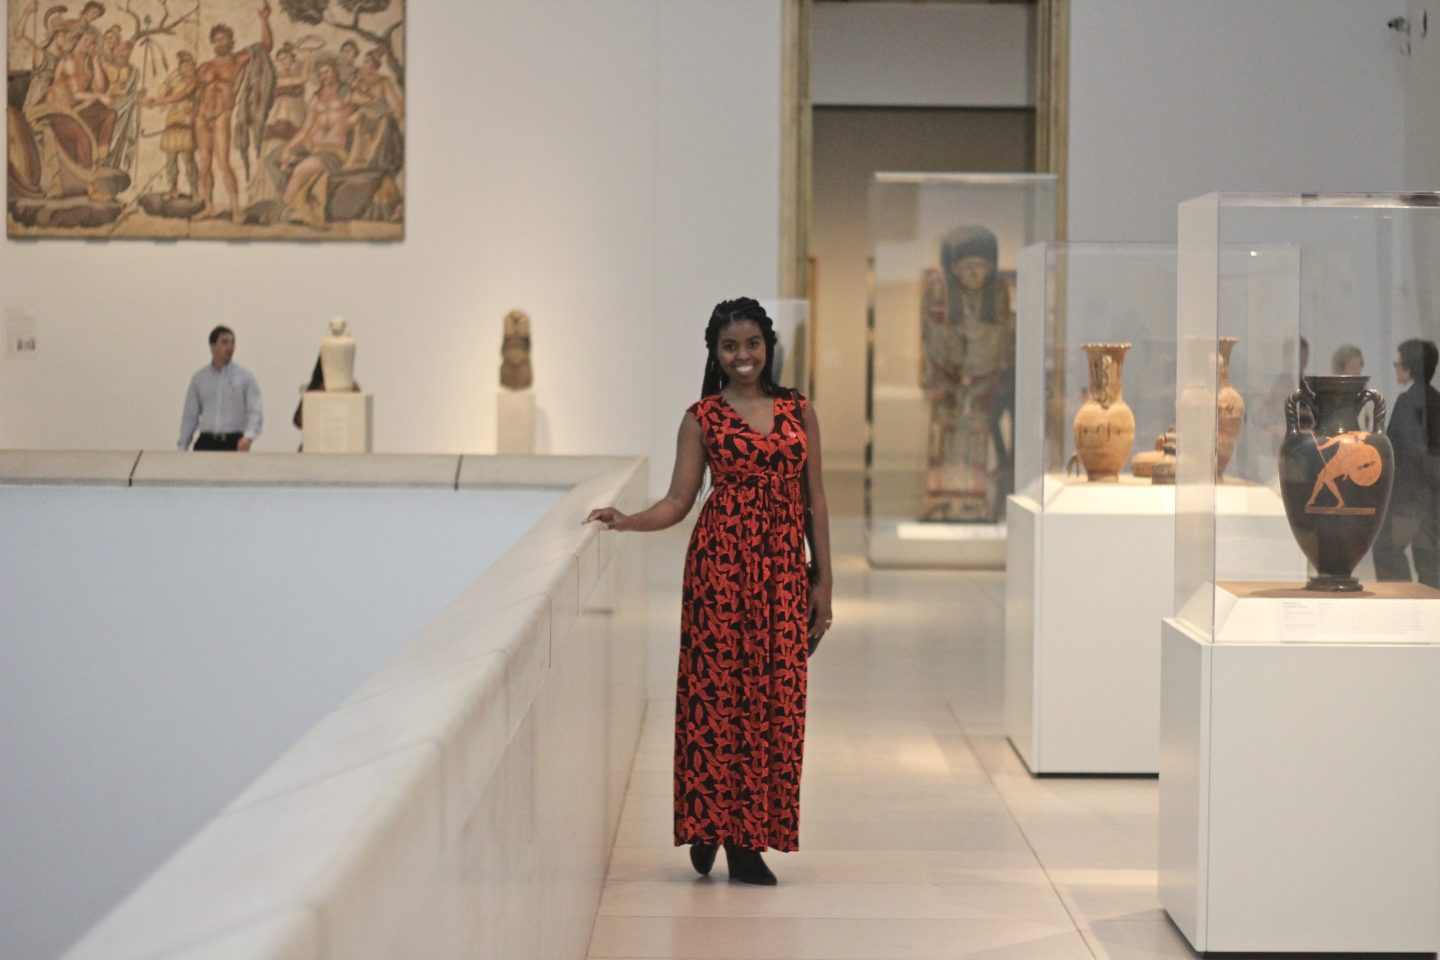 Top 5 Tips for Date Night at the Museum